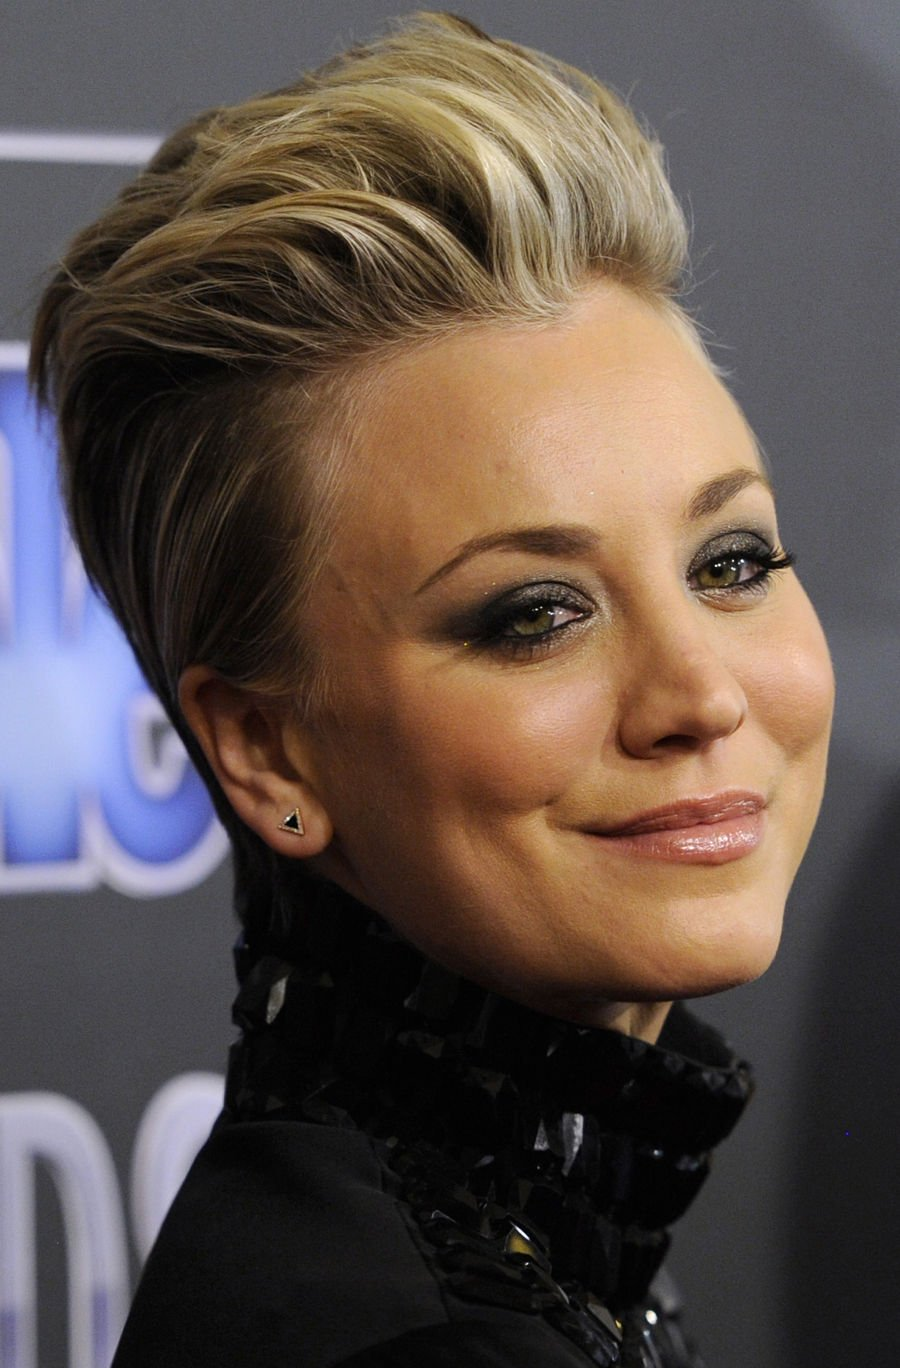 Kaley Cuoco Sweeting Apologizes For Comments On Feminism News